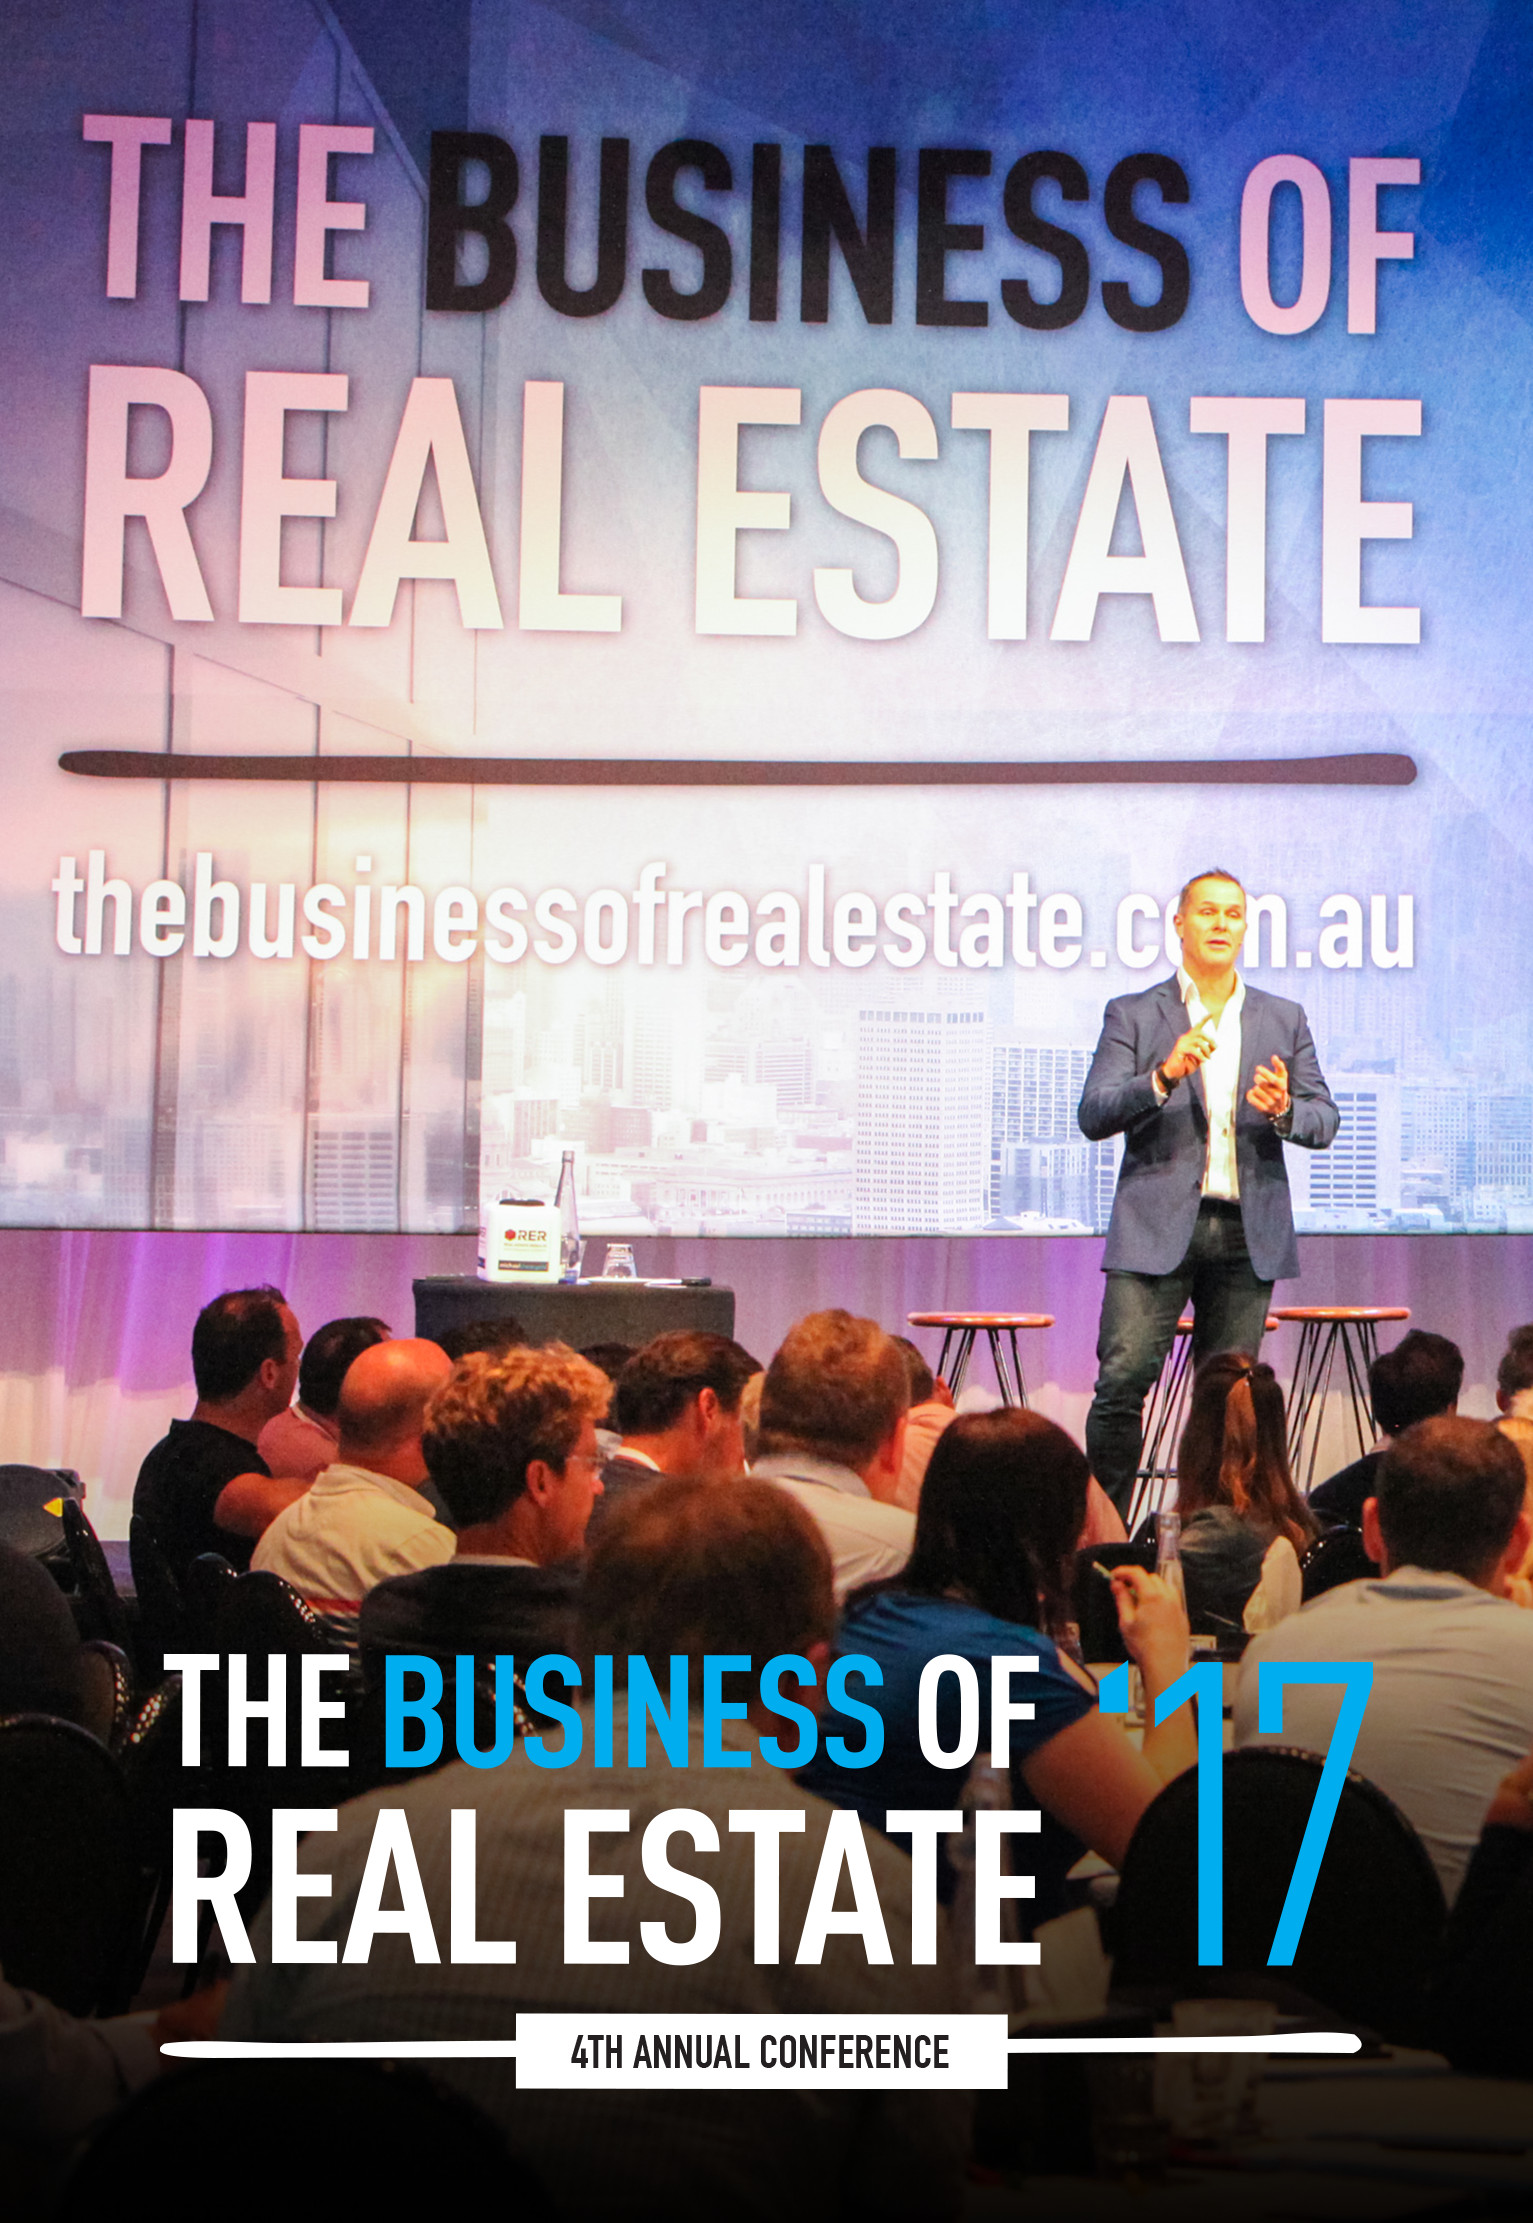 The Business of Real Estate 2017